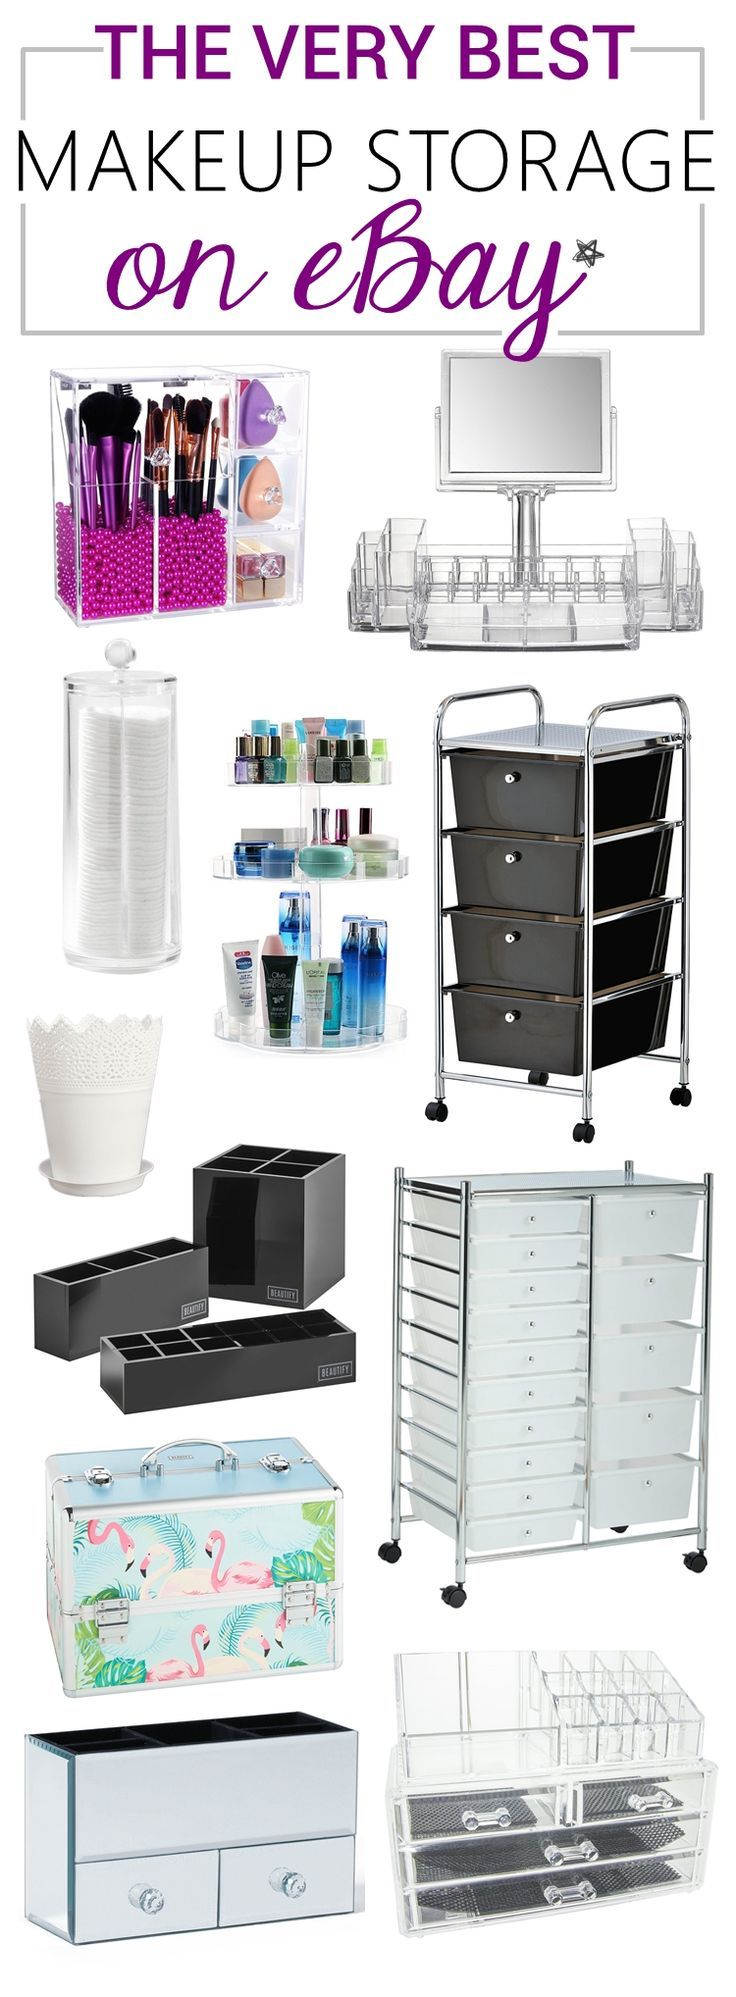 All the makeup storage solutions you could possibly want to find on eBay, all in...